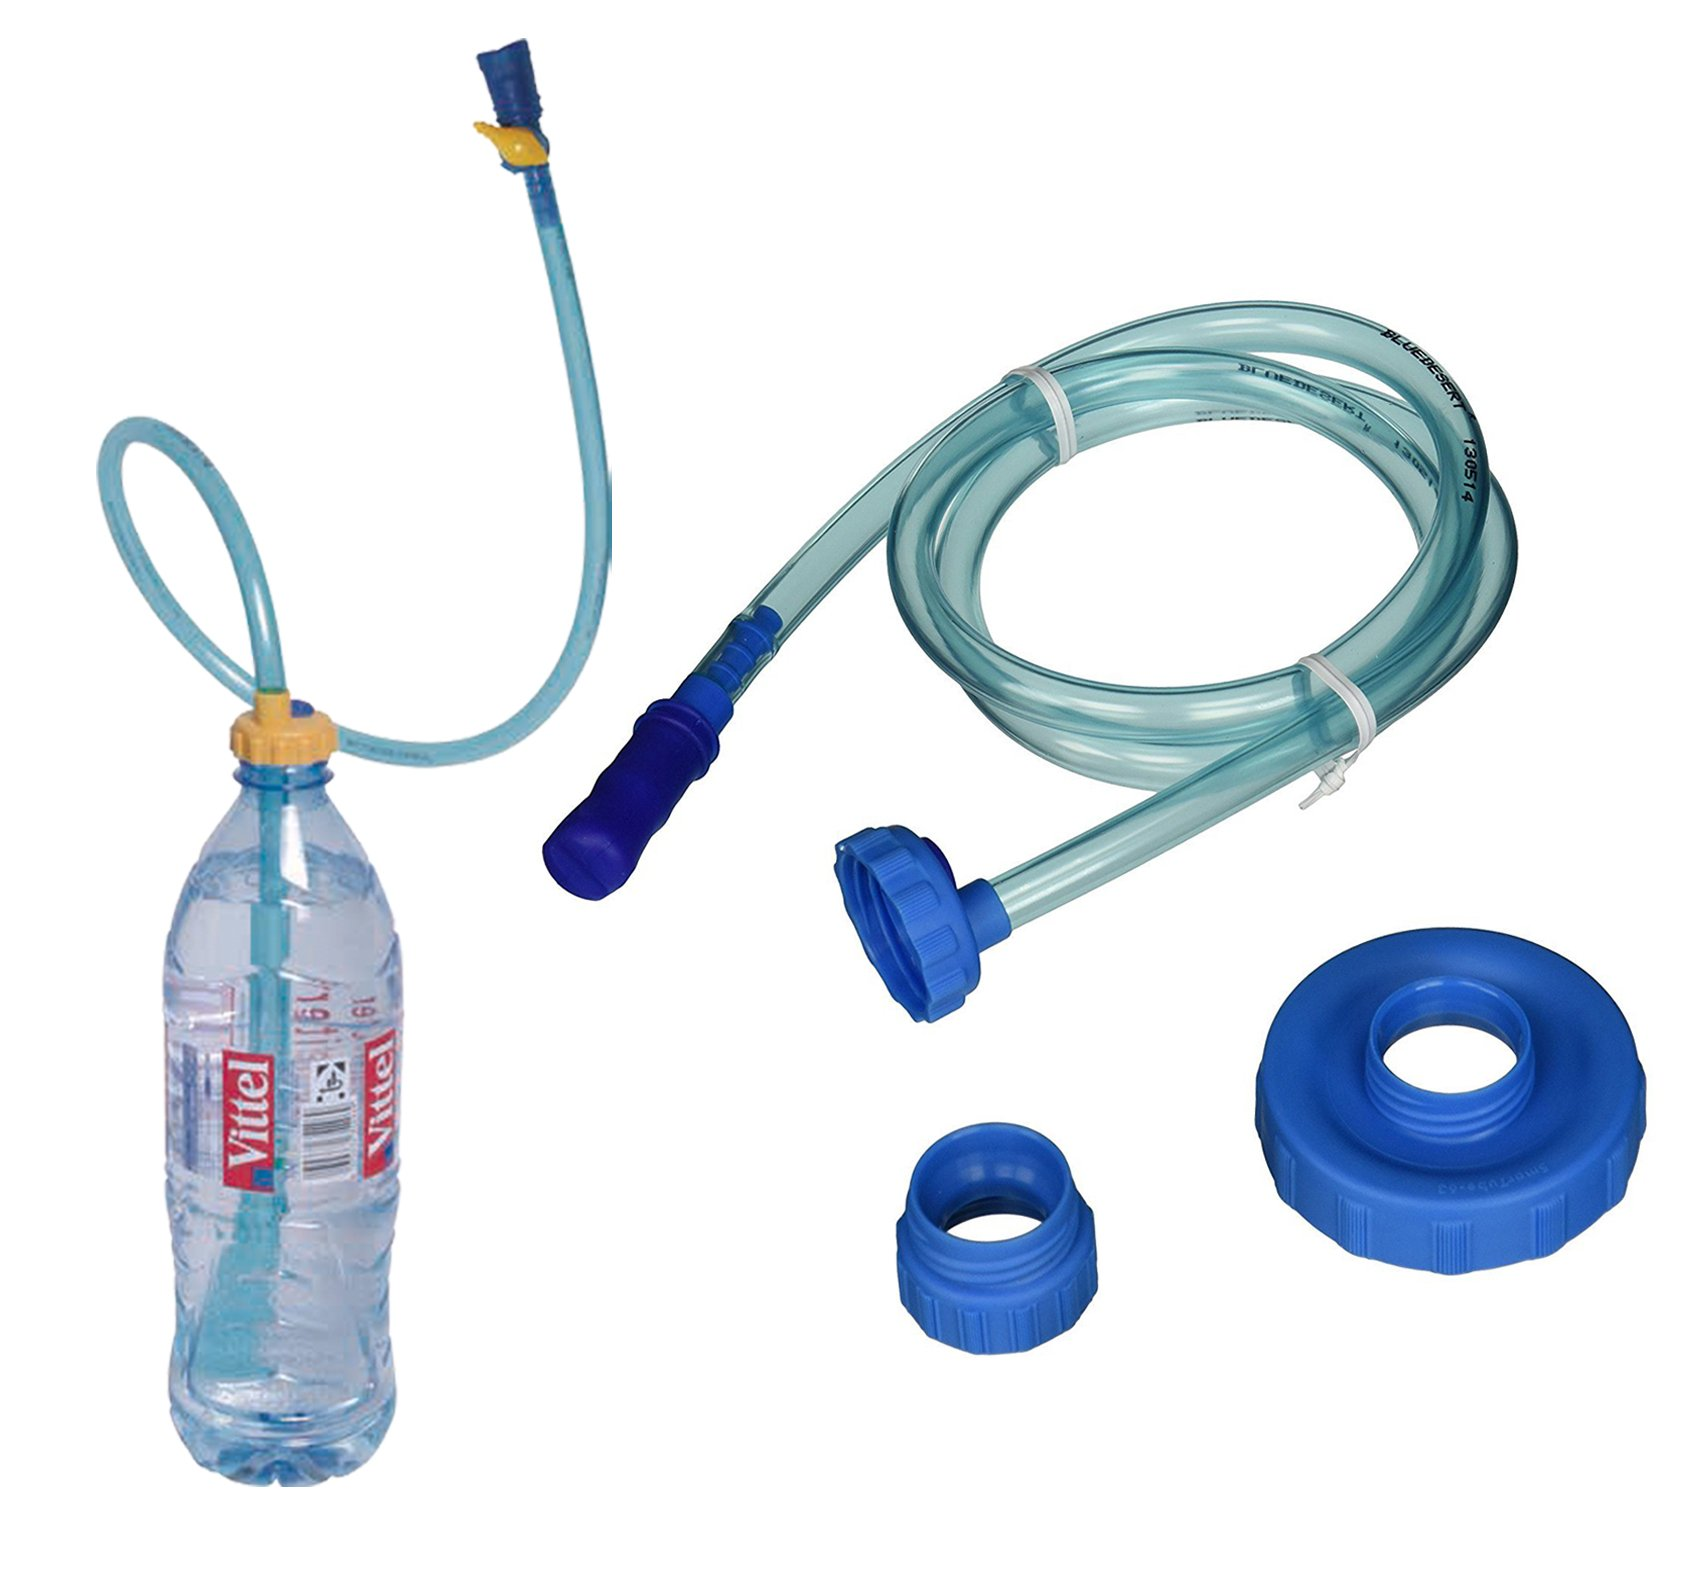 BlueDesert Smart Tube Hydration Drinking System for Water Bottles Hands Free During Activity